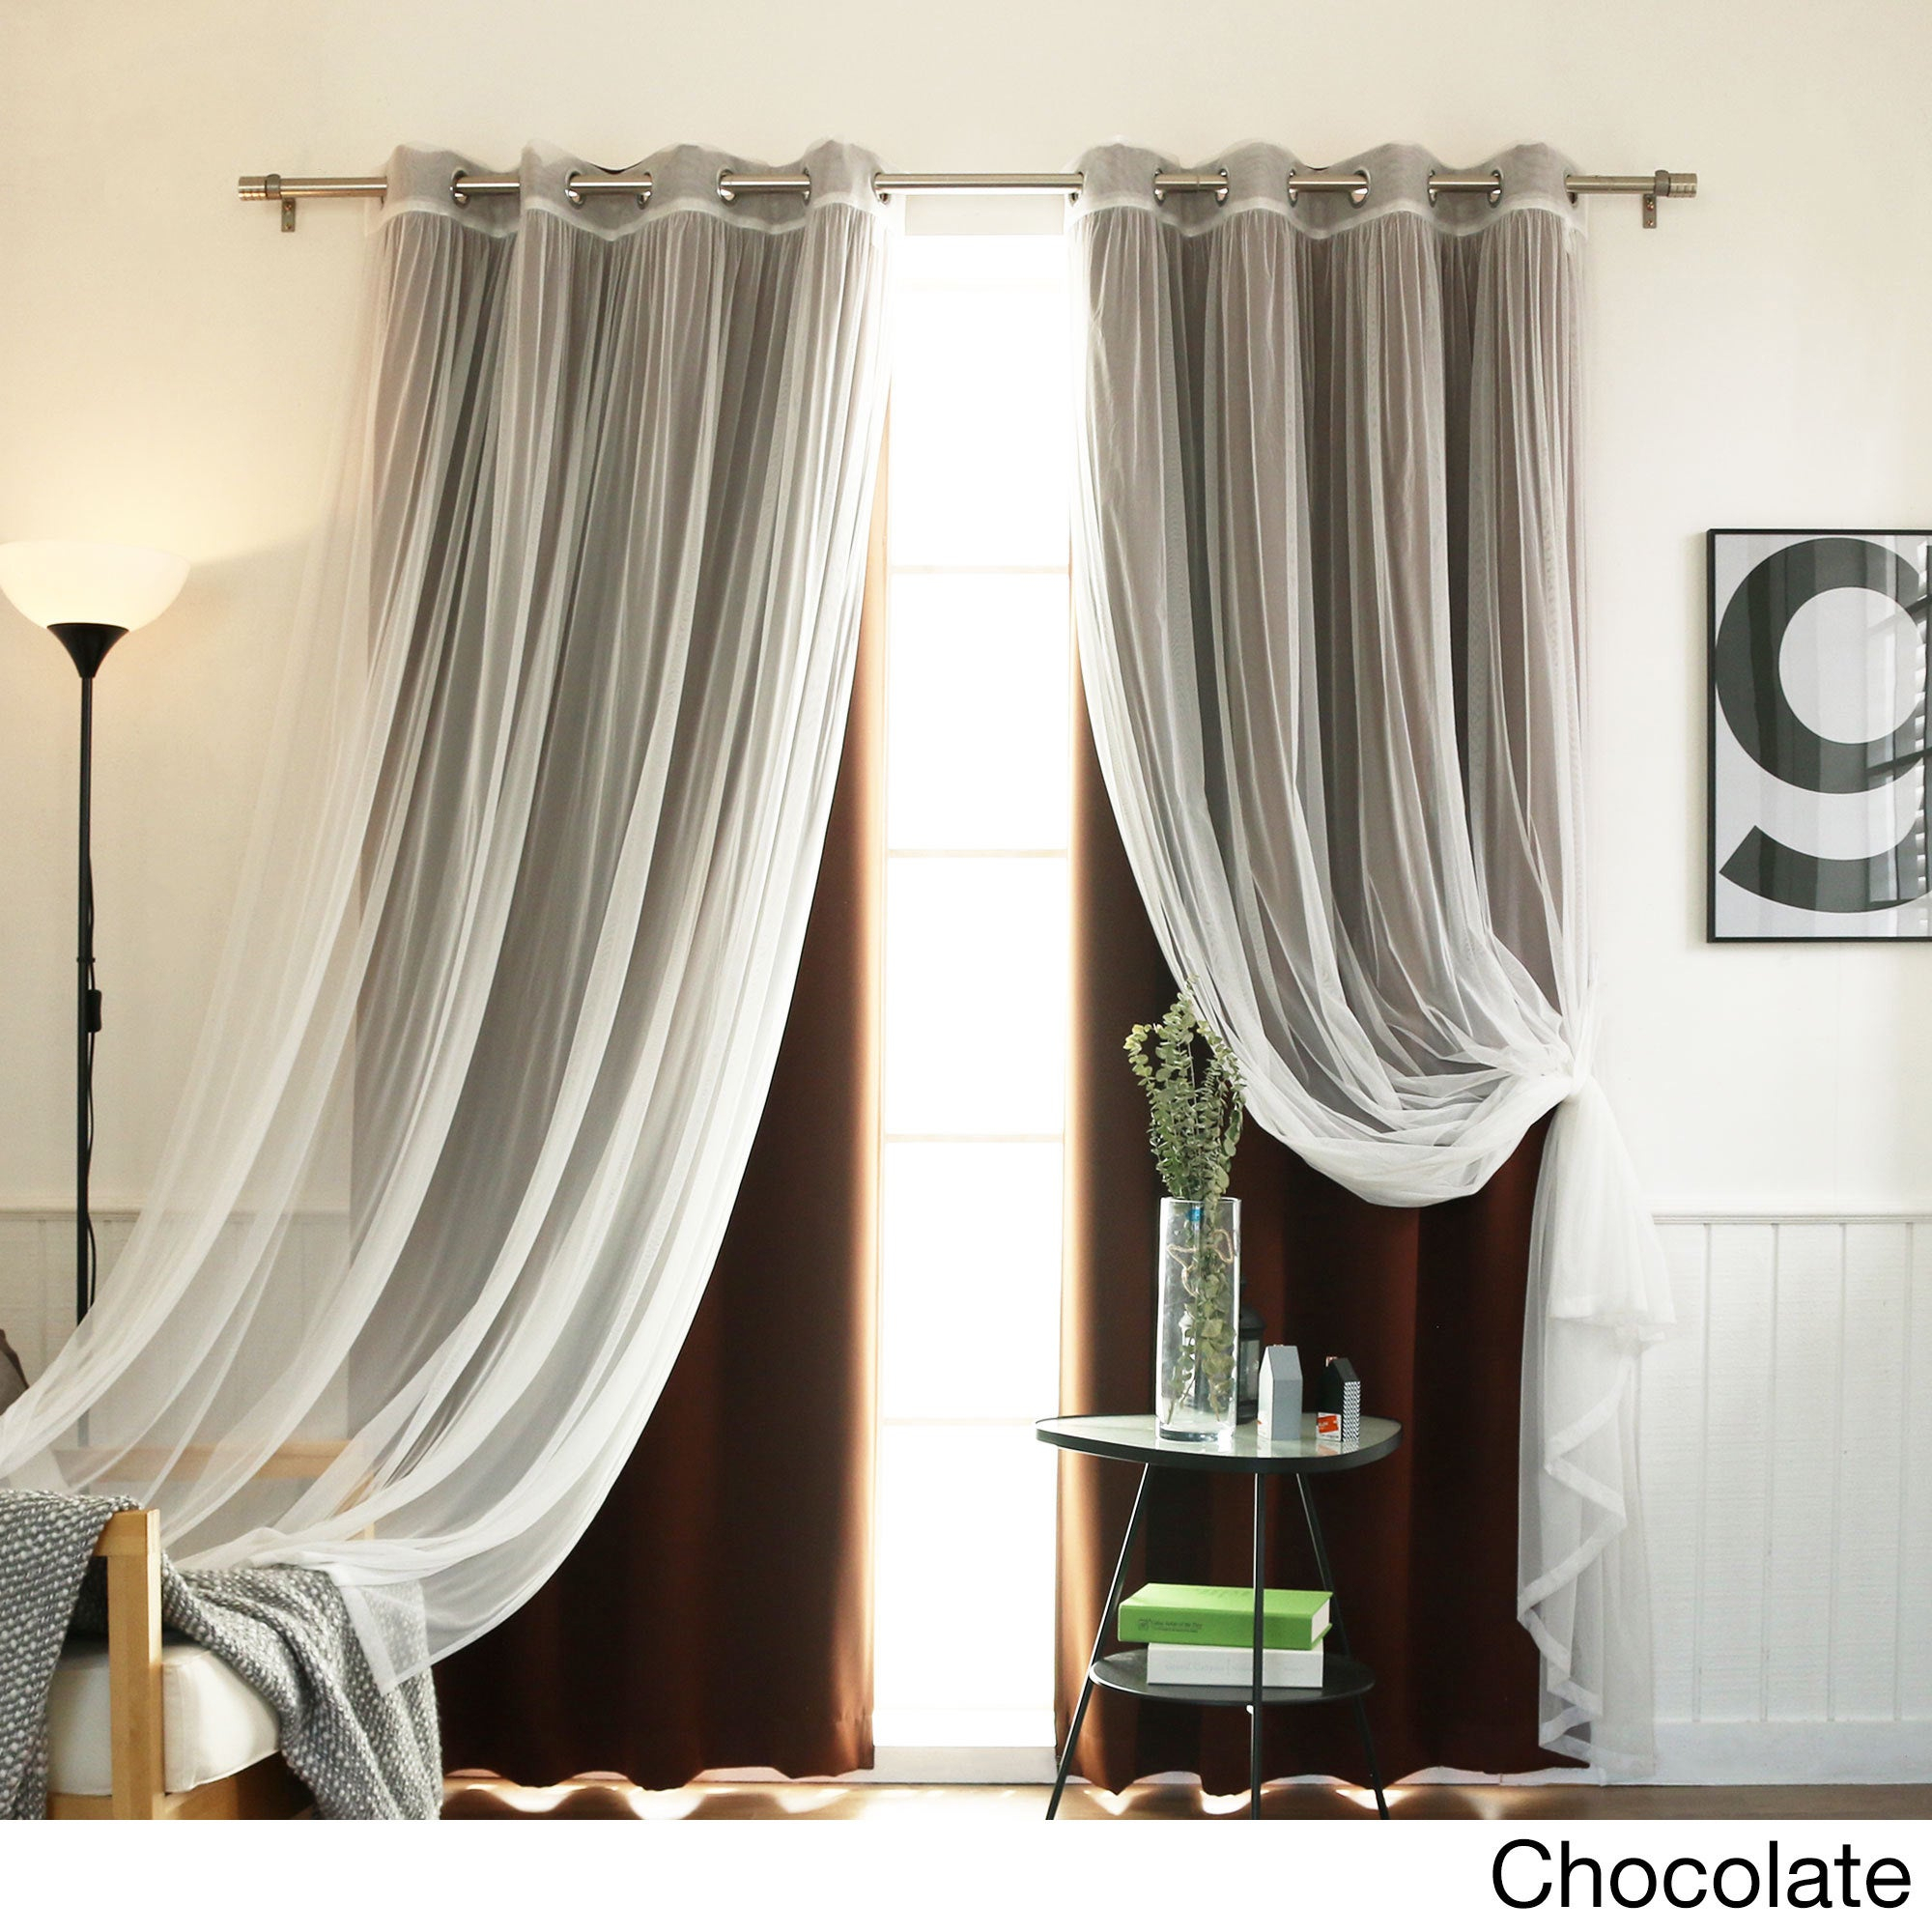 Aurora Home Mix And Match Blackout Tulle Lace Sheer 4 Piece Curtain Panel Set Inside Mix And Match Blackout Tulle Lace Sheer Curtain Panel Sets (View 6 of 20)